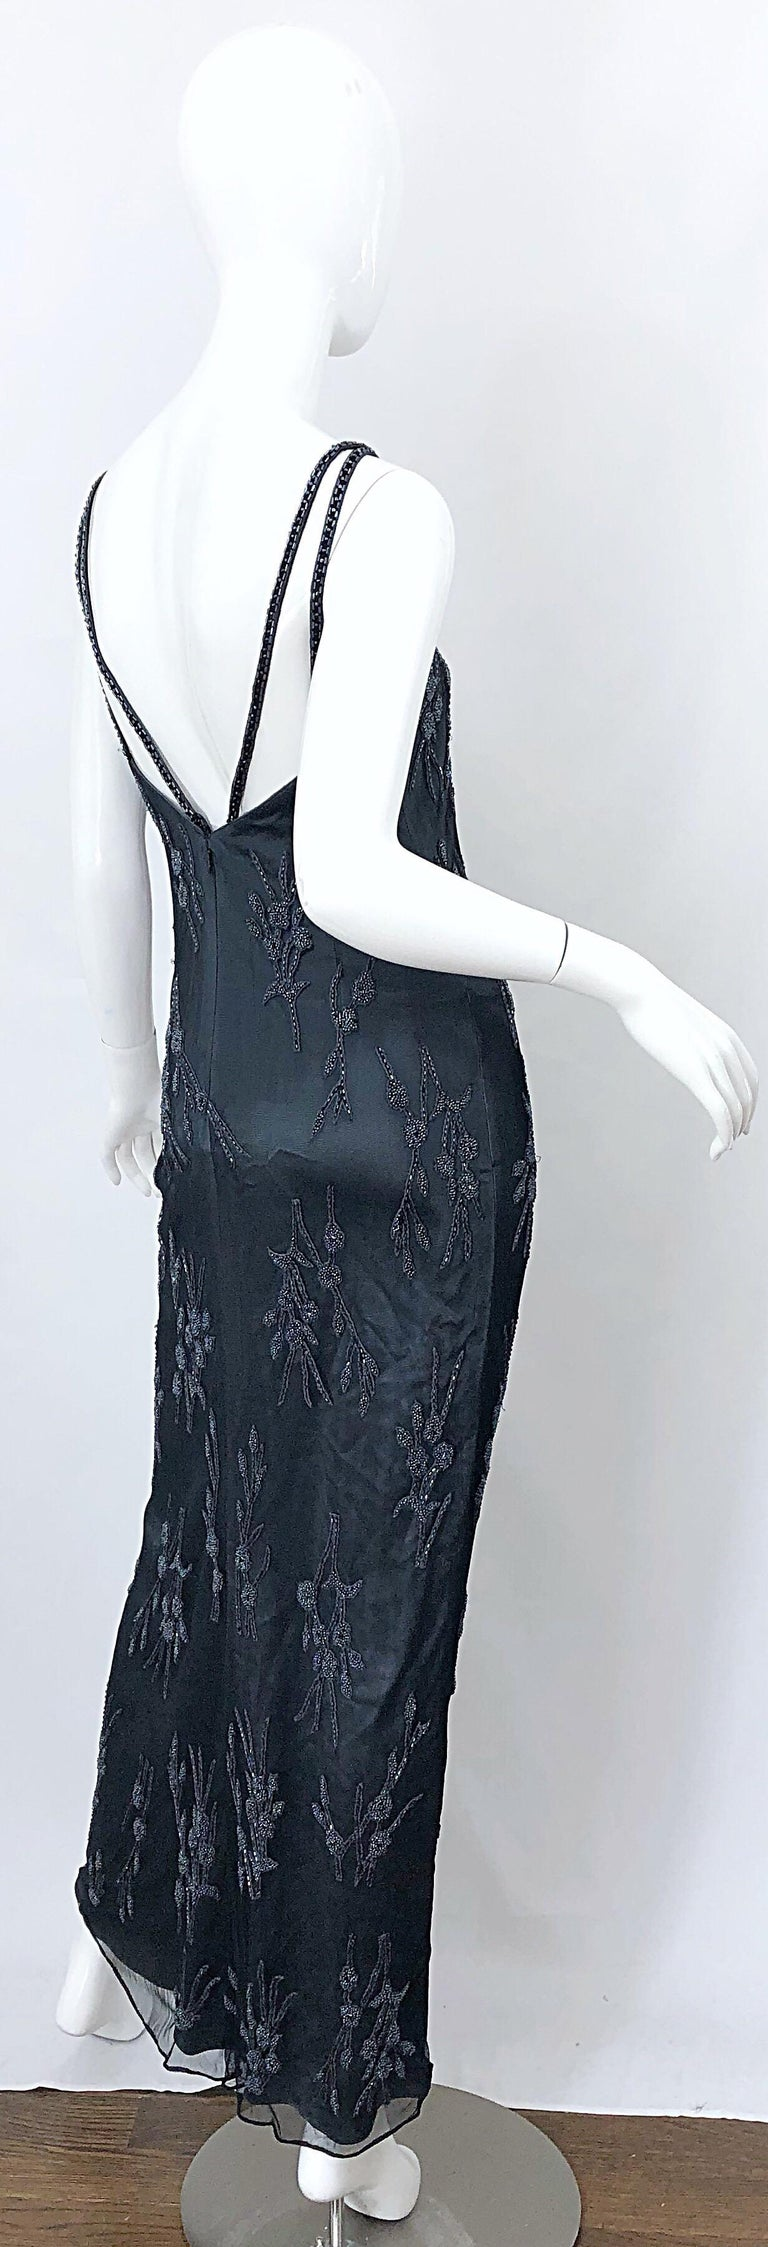 Vintage Bob Mackie Size 8 Grey Beaded 1990s Sequin Sleeveless 90s Evening Gown For Sale 8